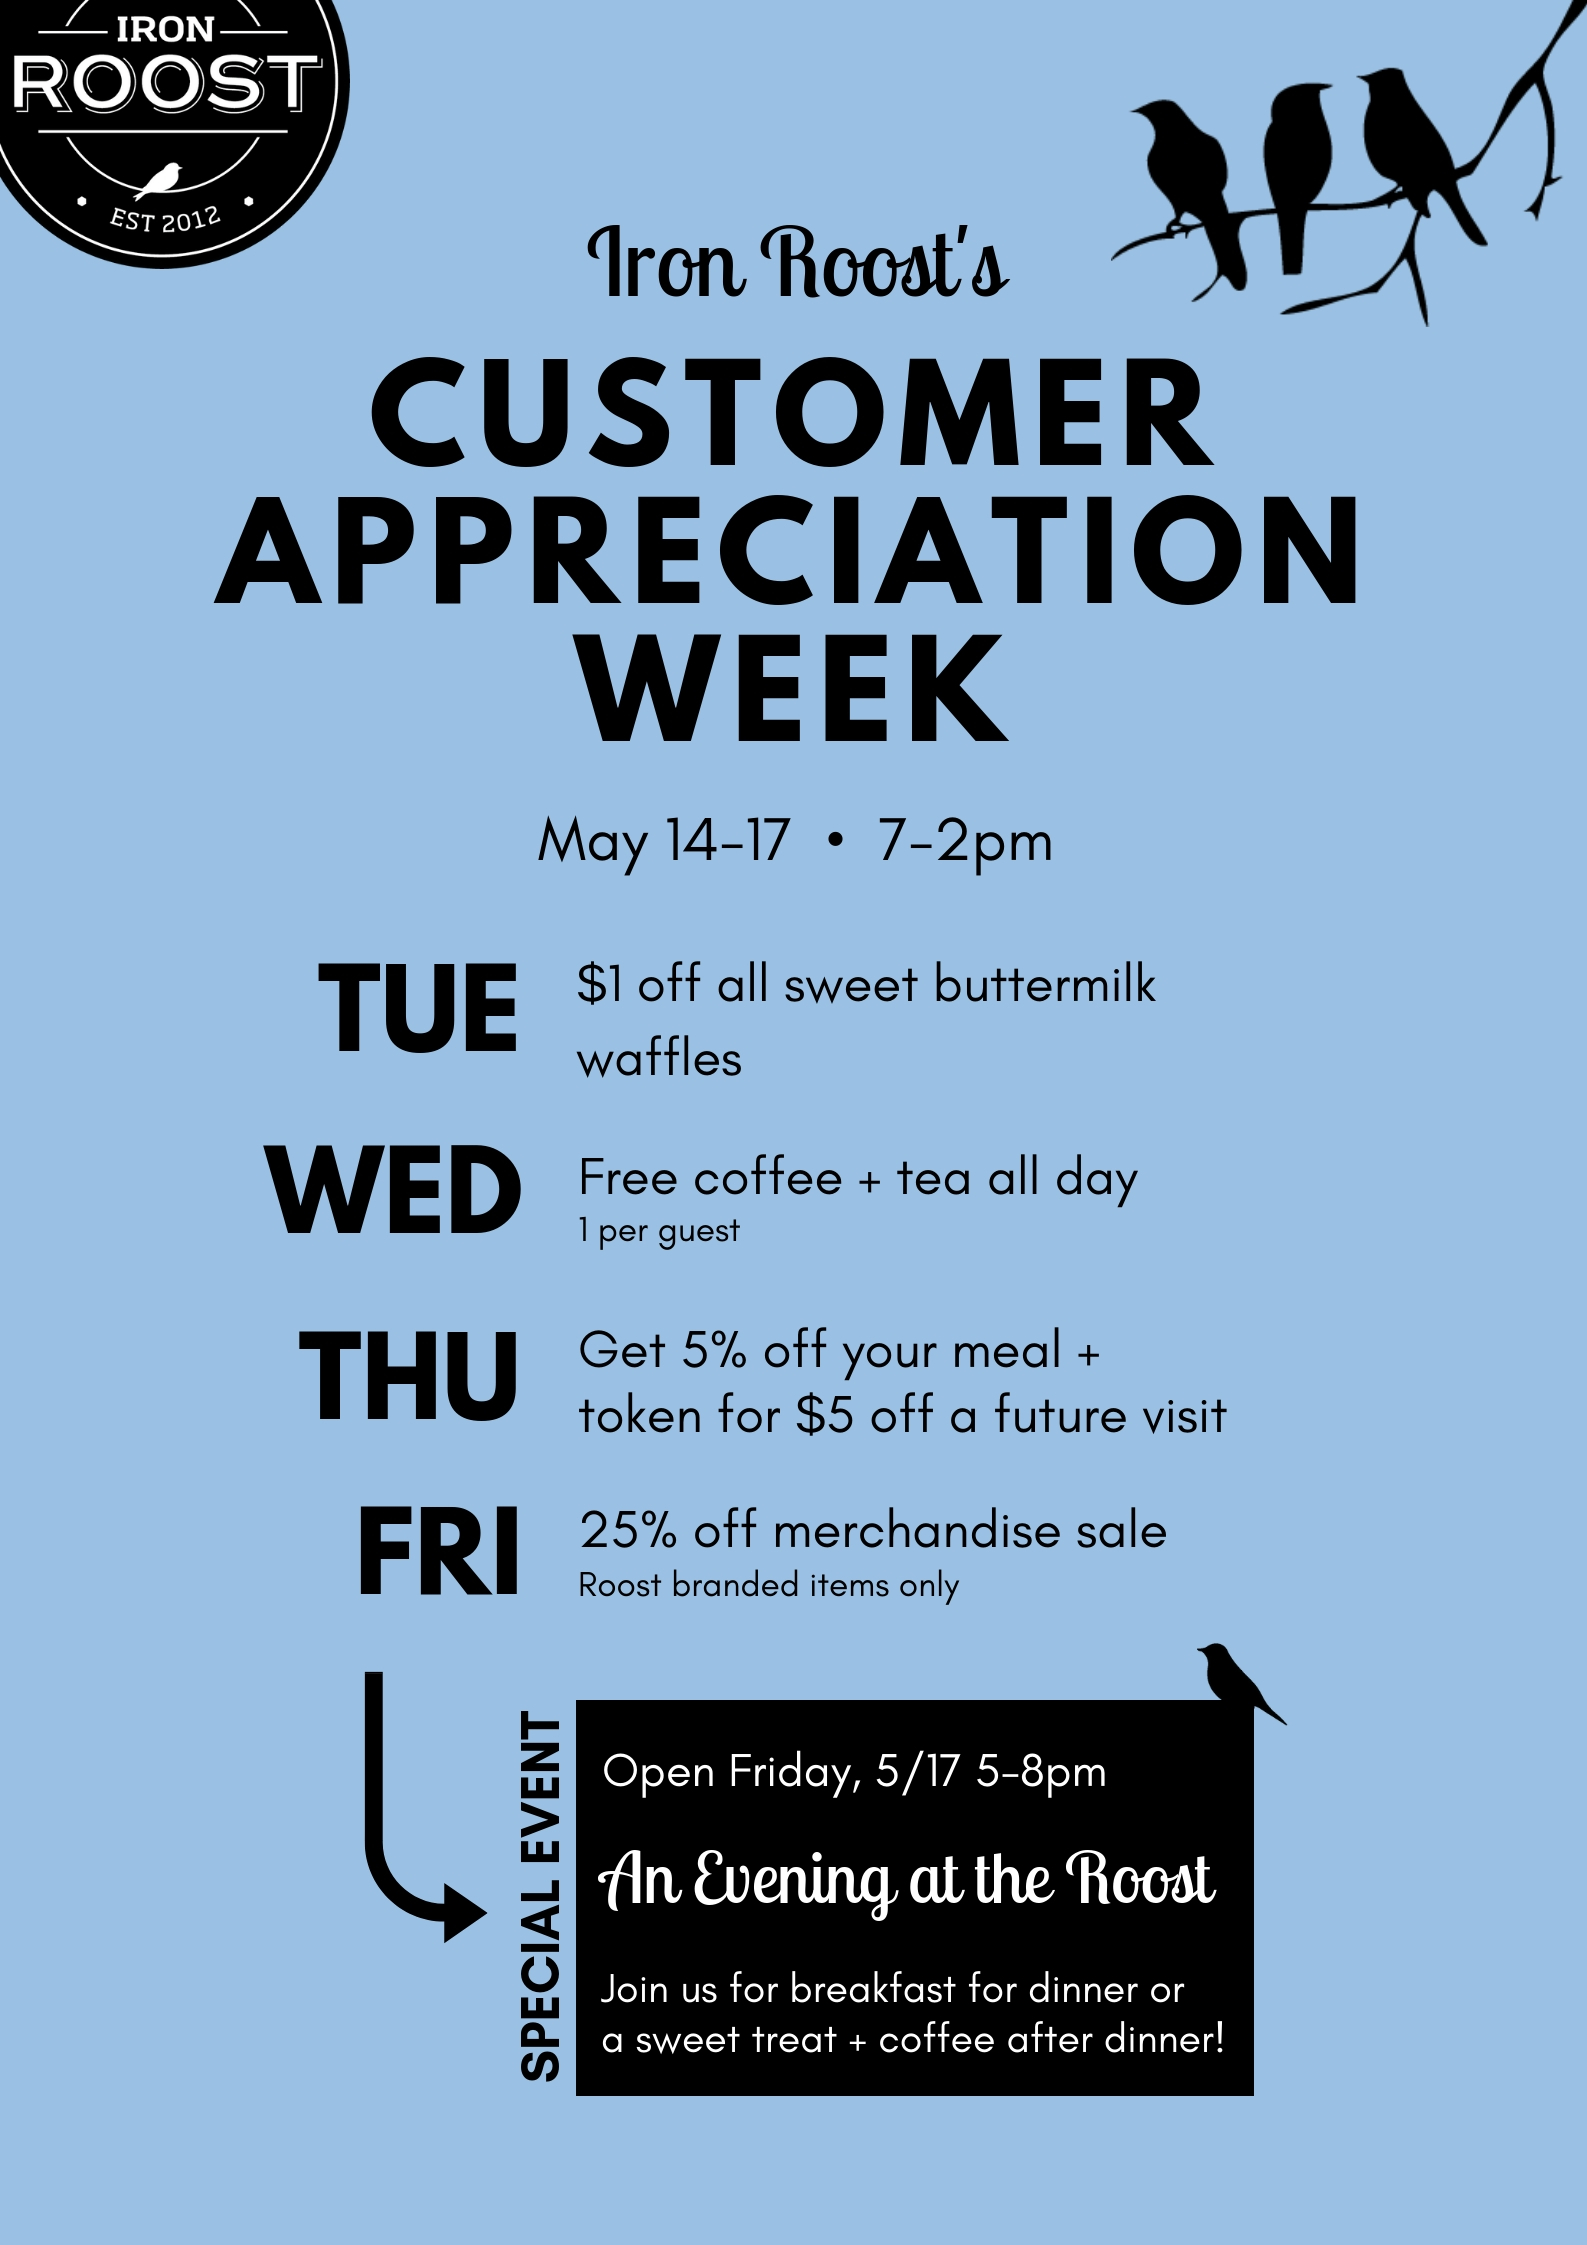 CustomerAppreciationWeek.jpg